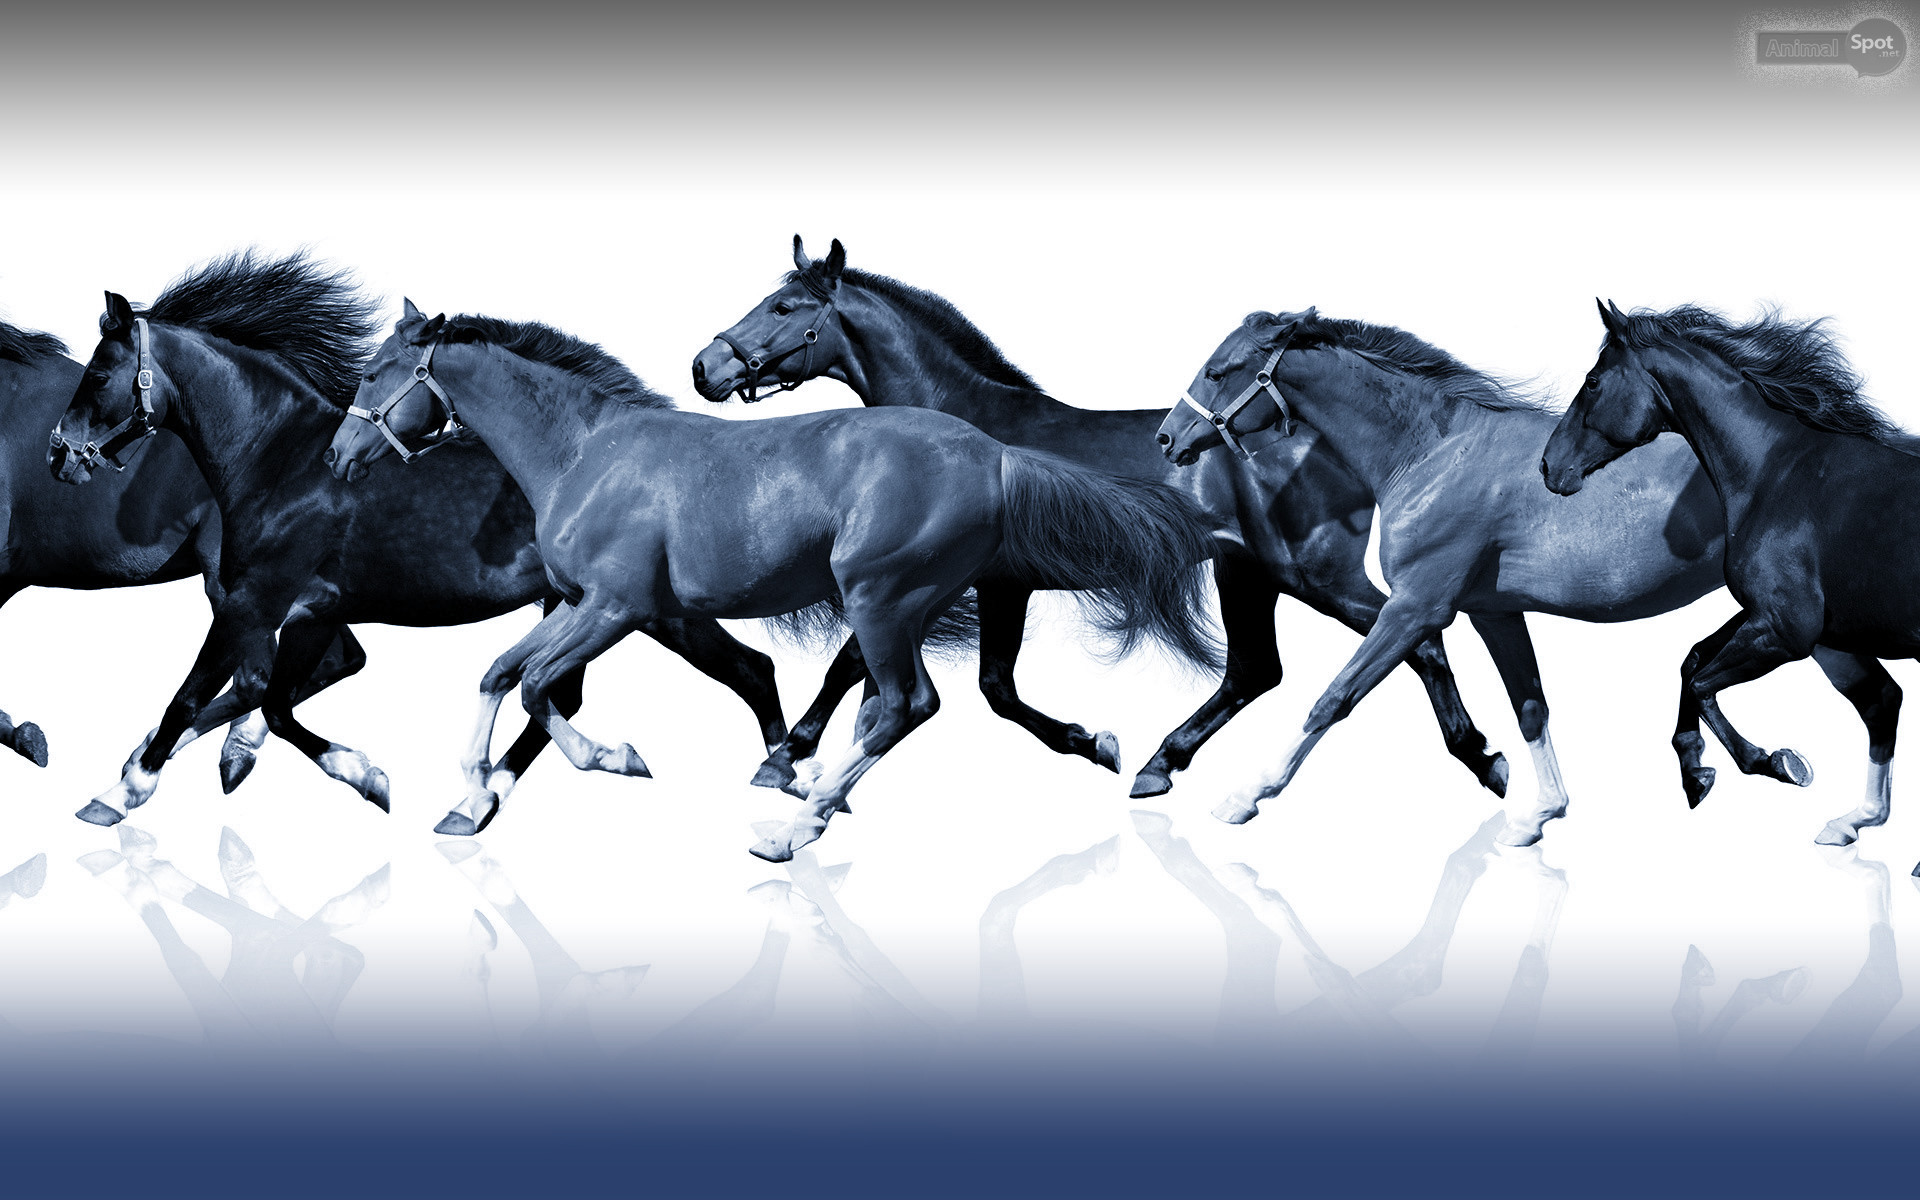 Res: 1920x1200, JQK.947 Horses Wallpaper 857.34 Kb